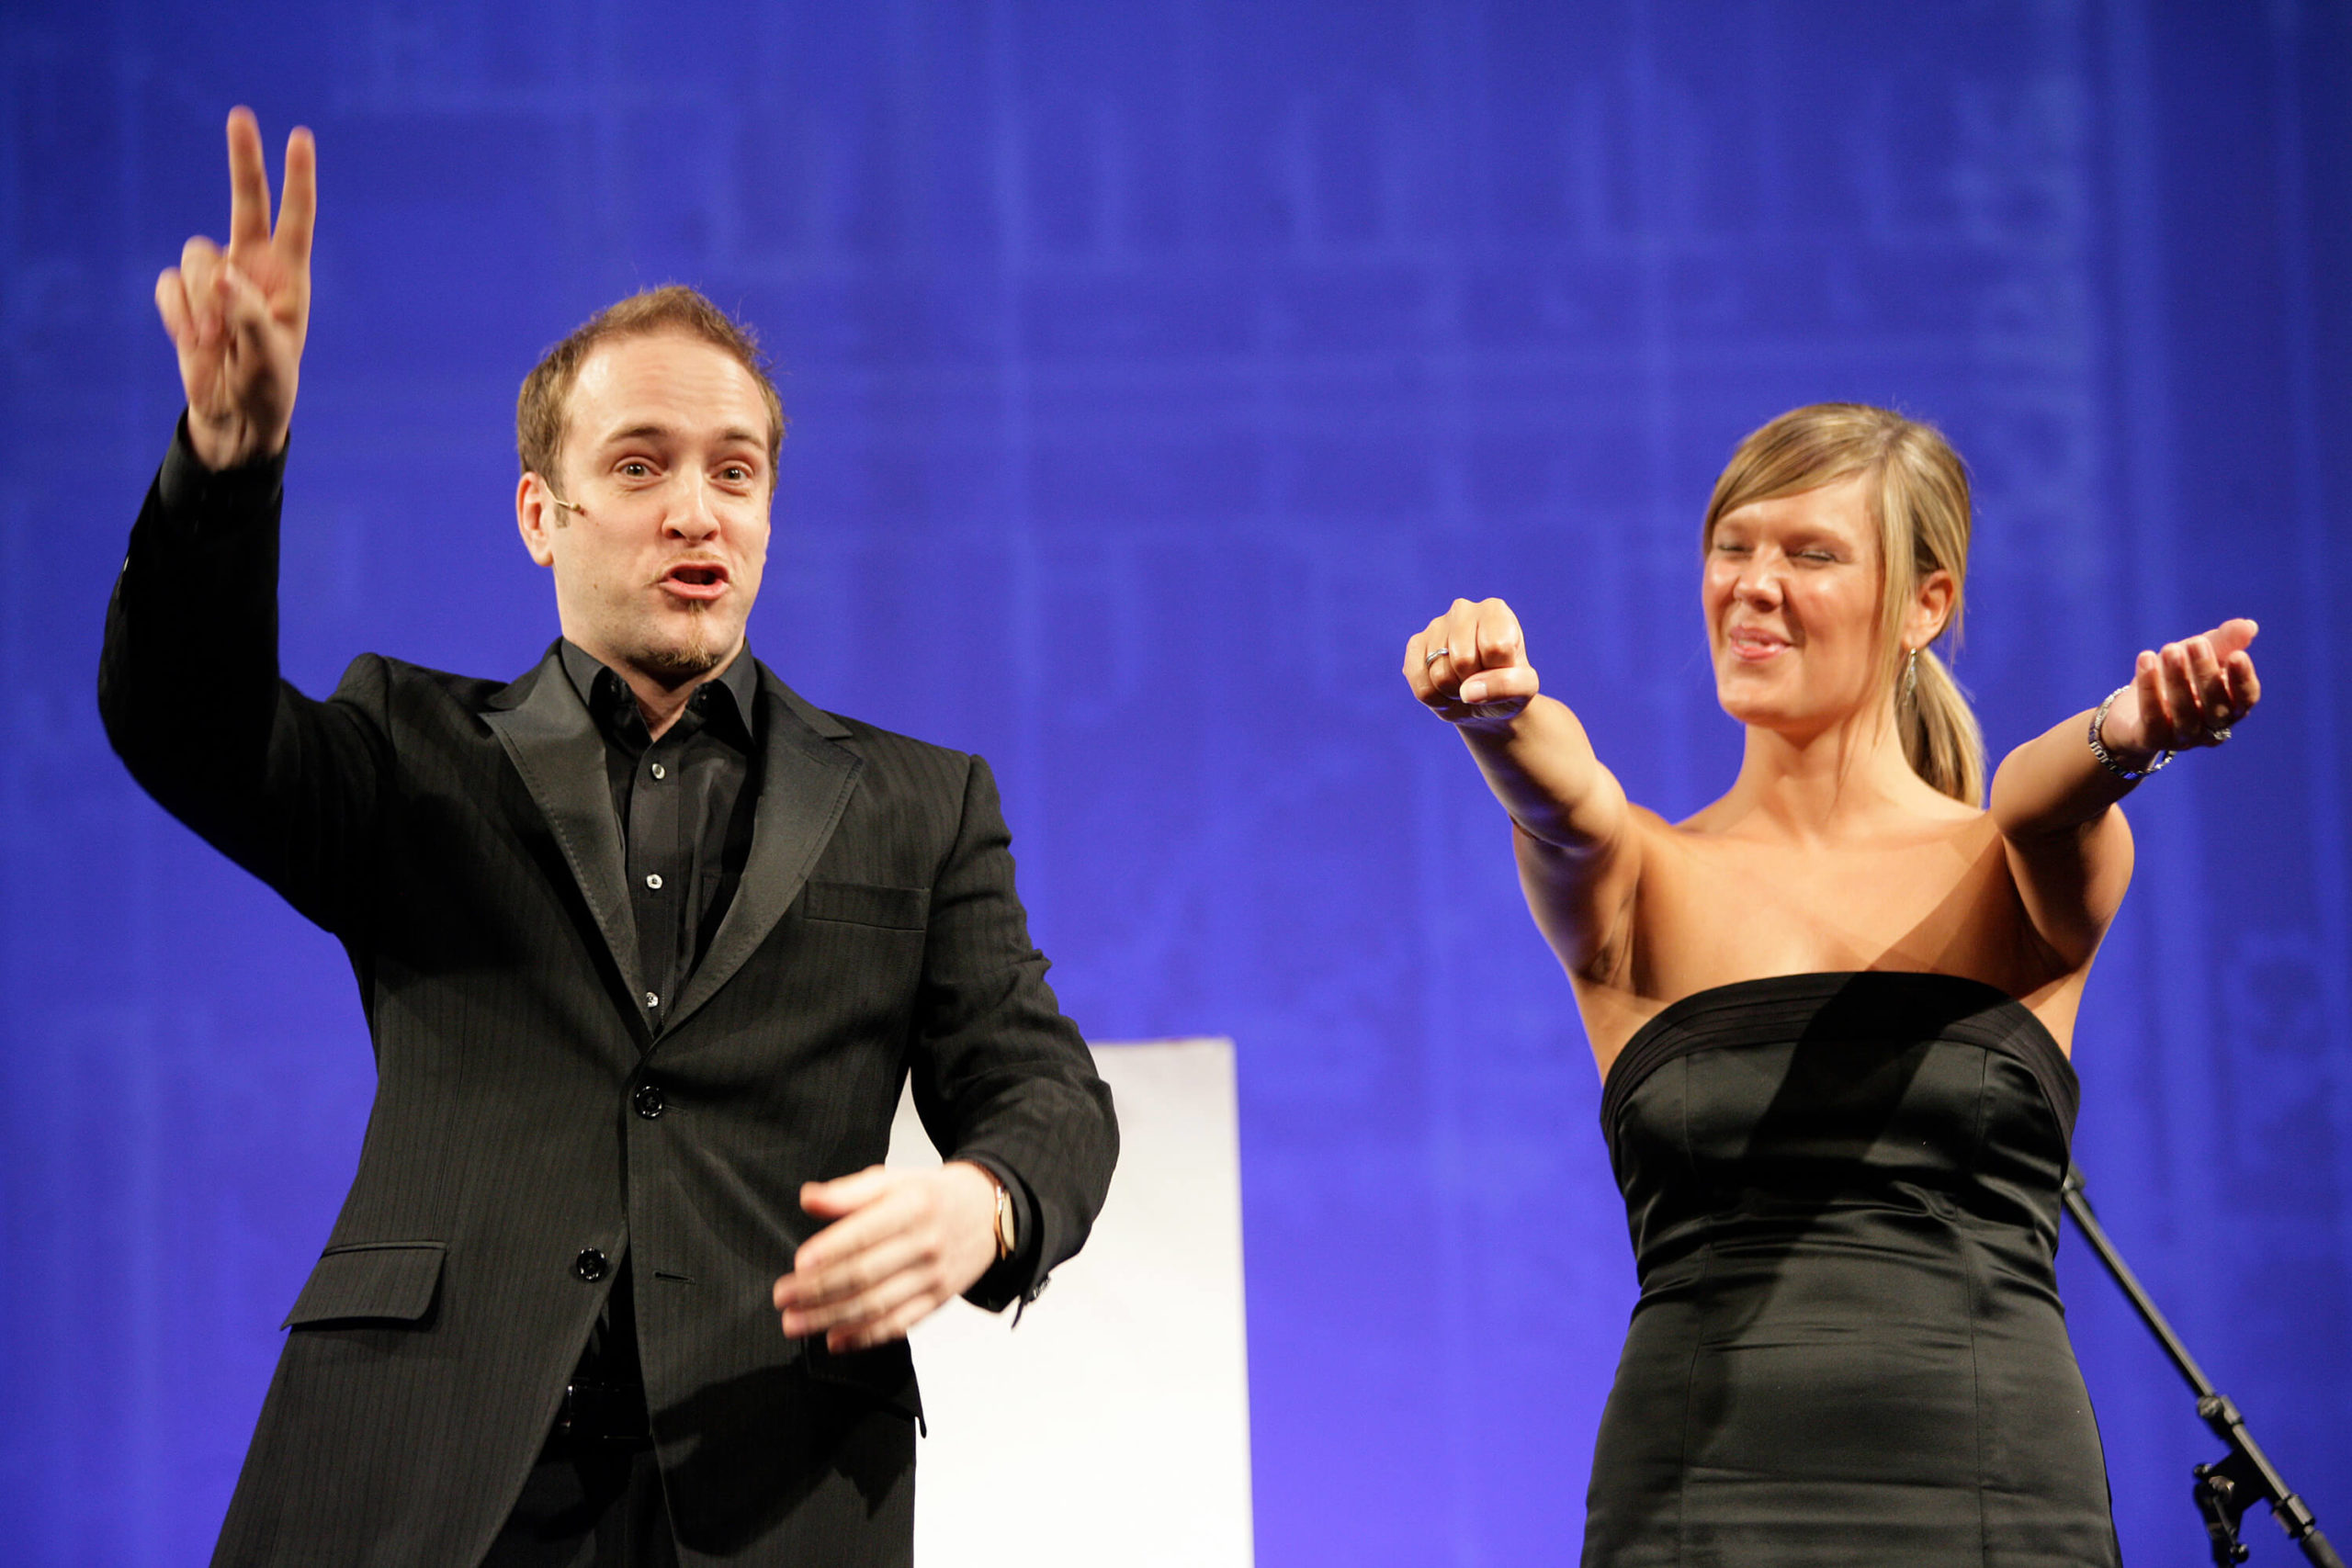 Magician, Derren Brown